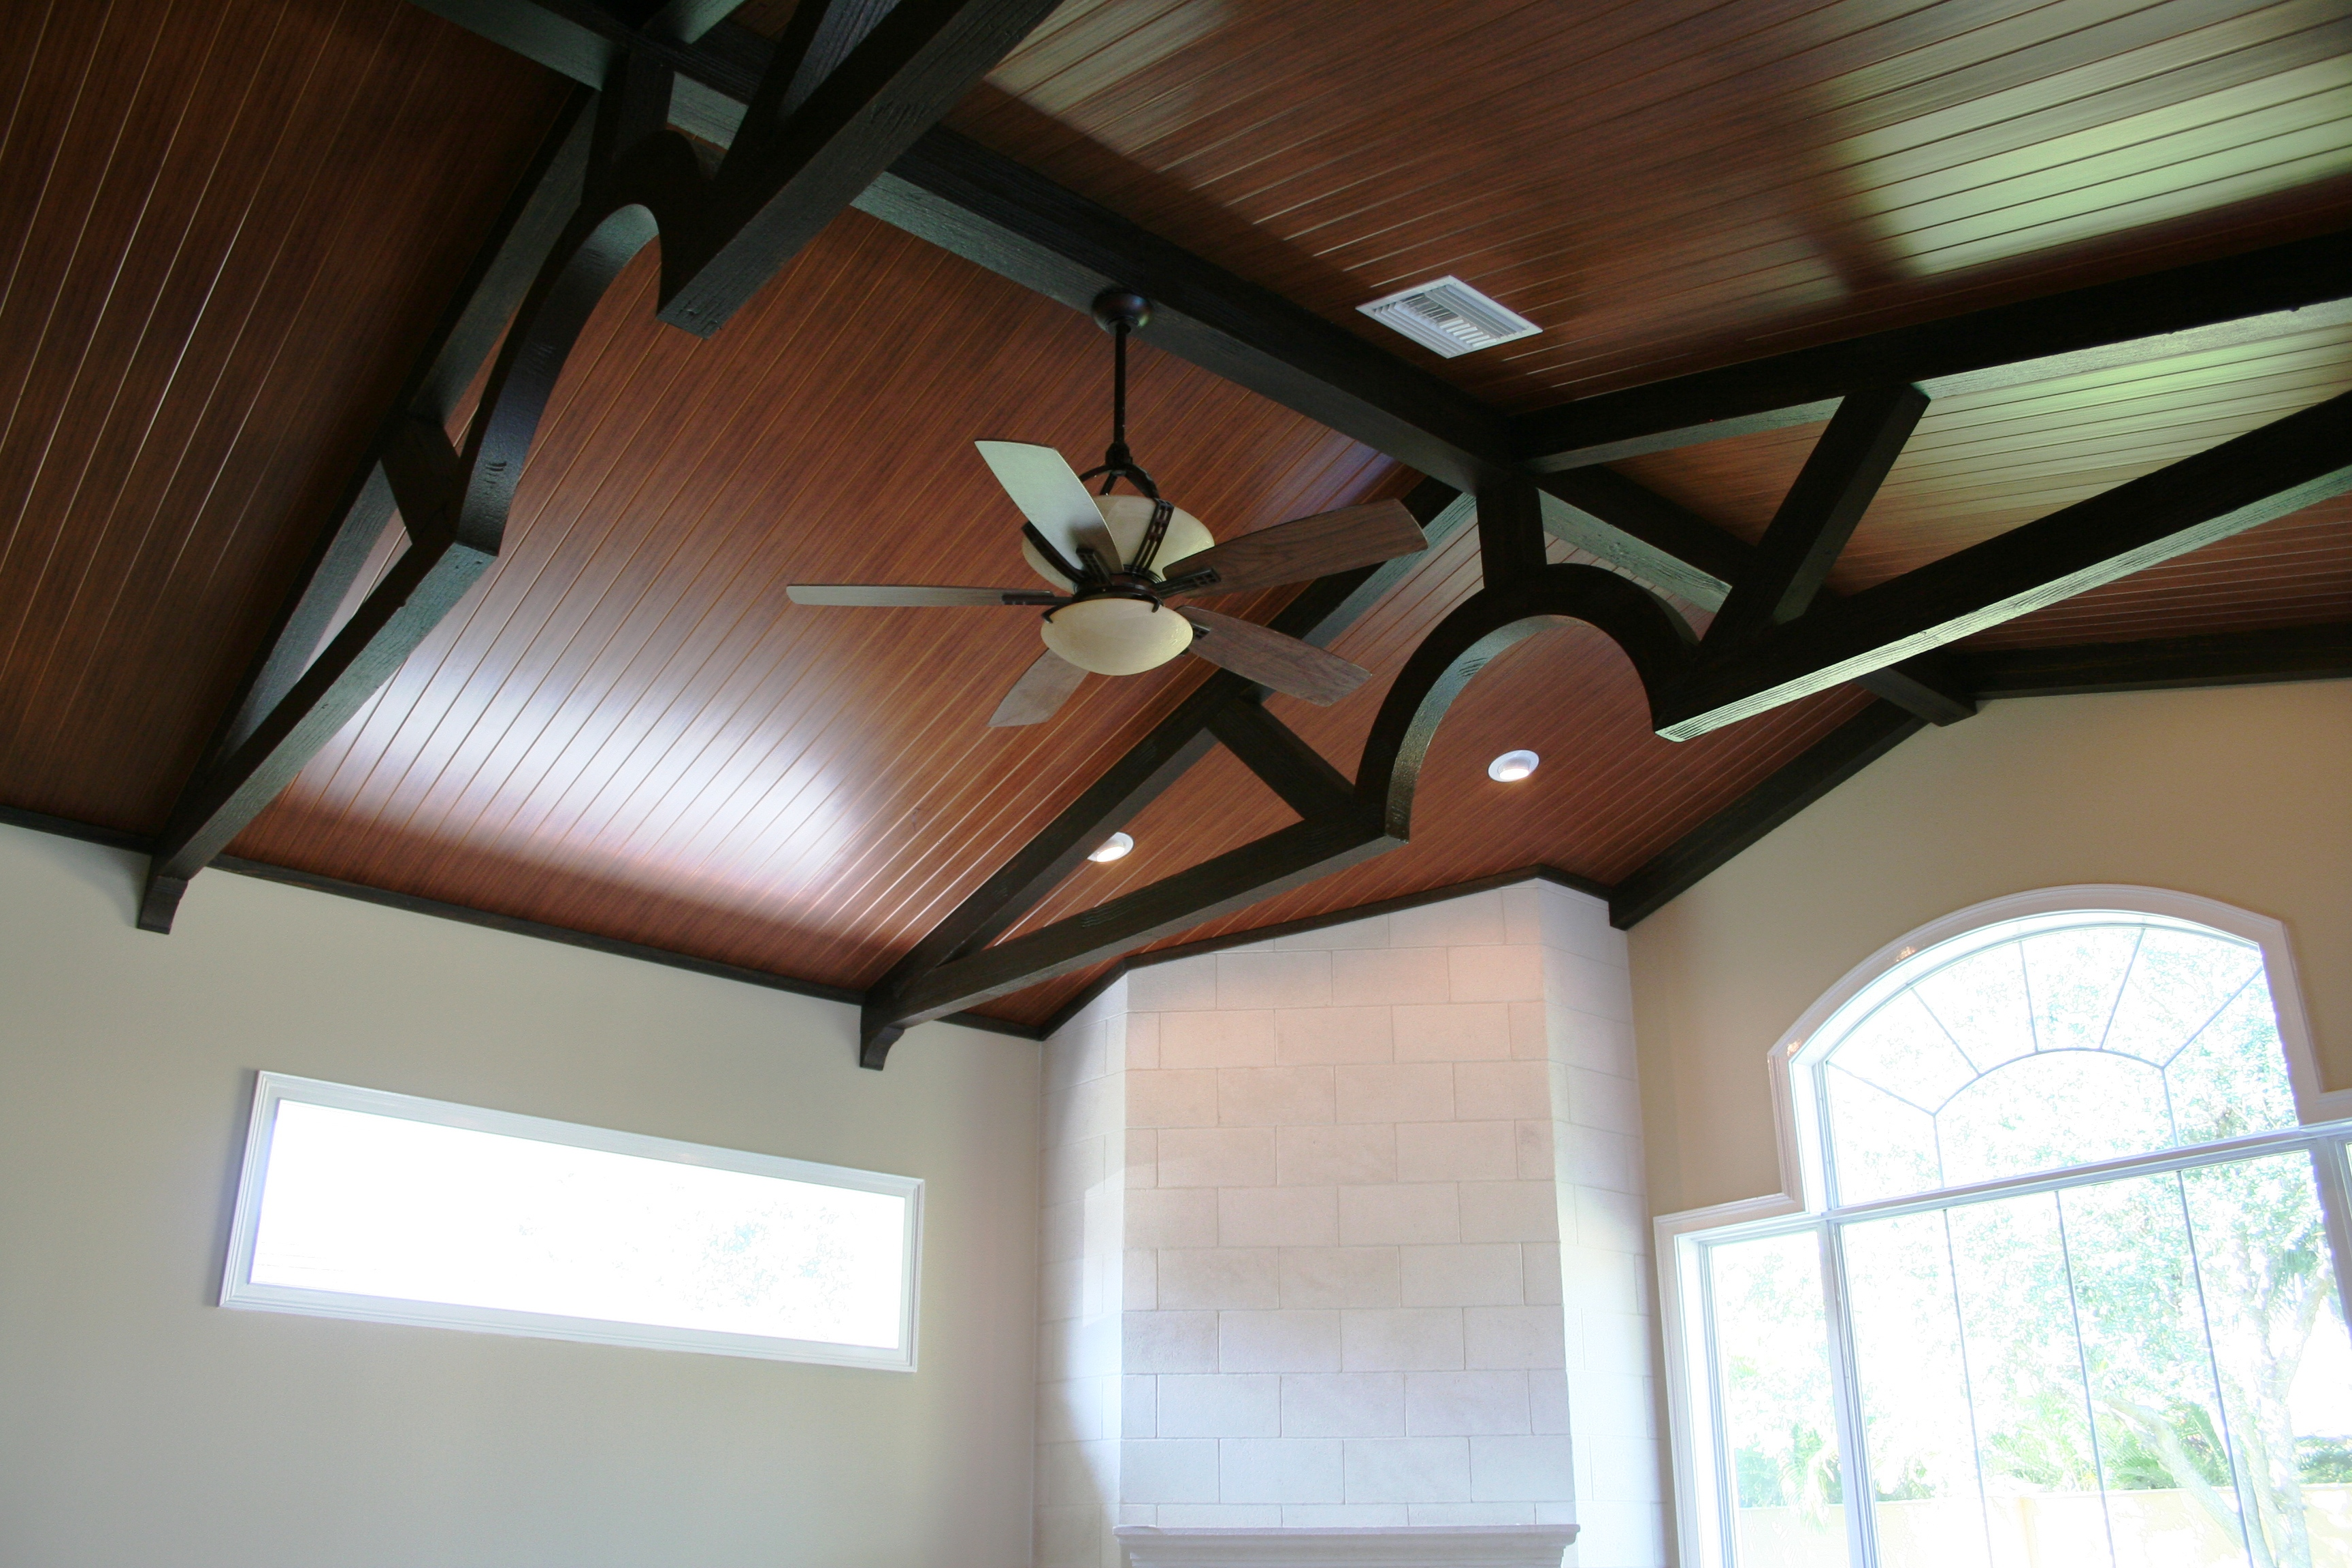 Charming Ceilings Became Our Bread And Butter. We Pride Ourselves In Bringing To  Your Home A Prepared Crew, Quality Materials And Commitment To Quality.